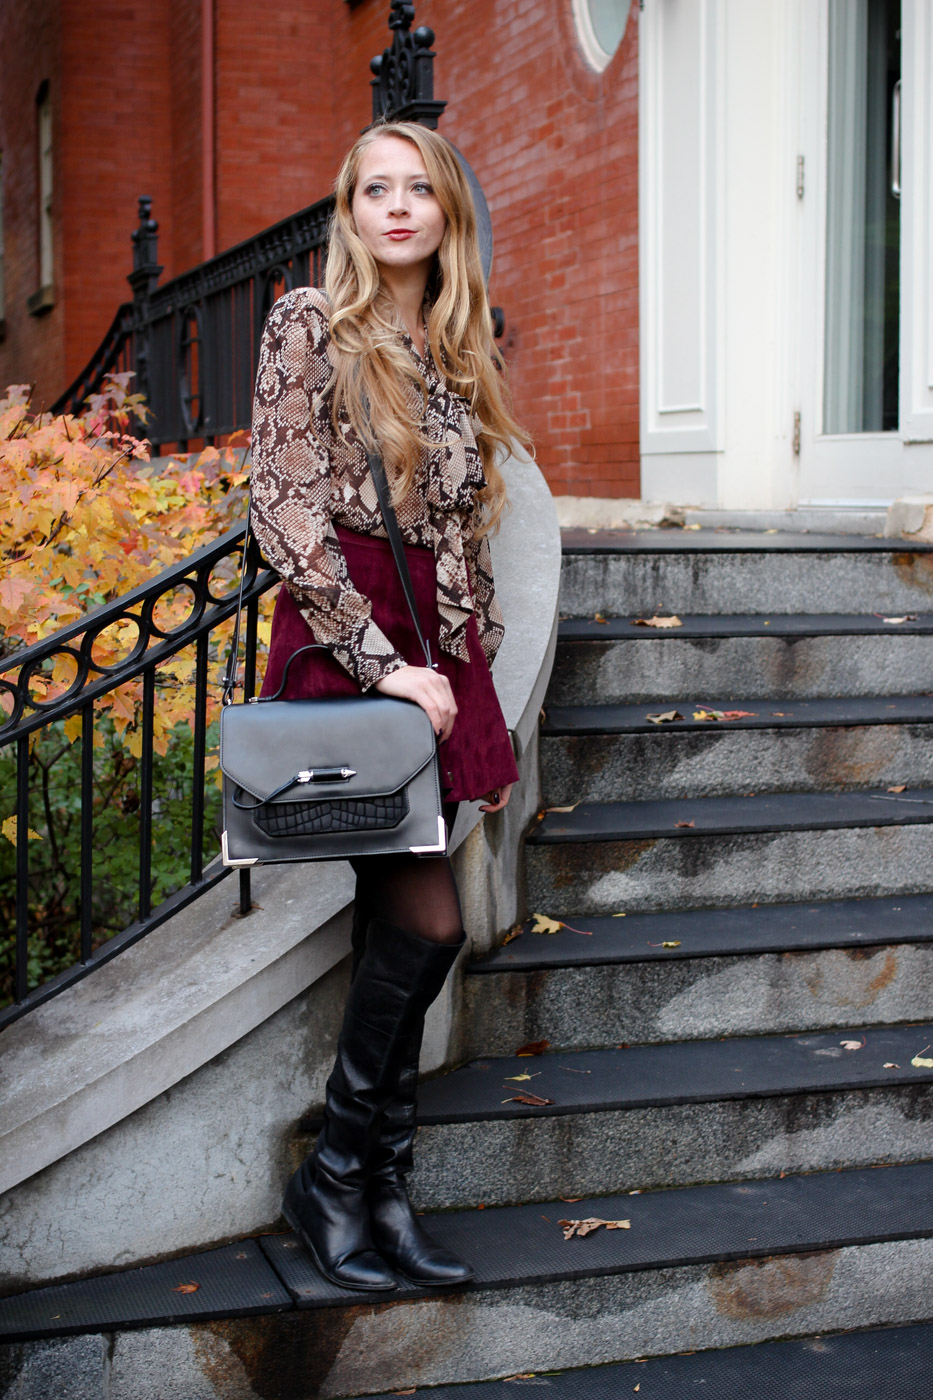 snakeskin blouse and suede skirt outfit